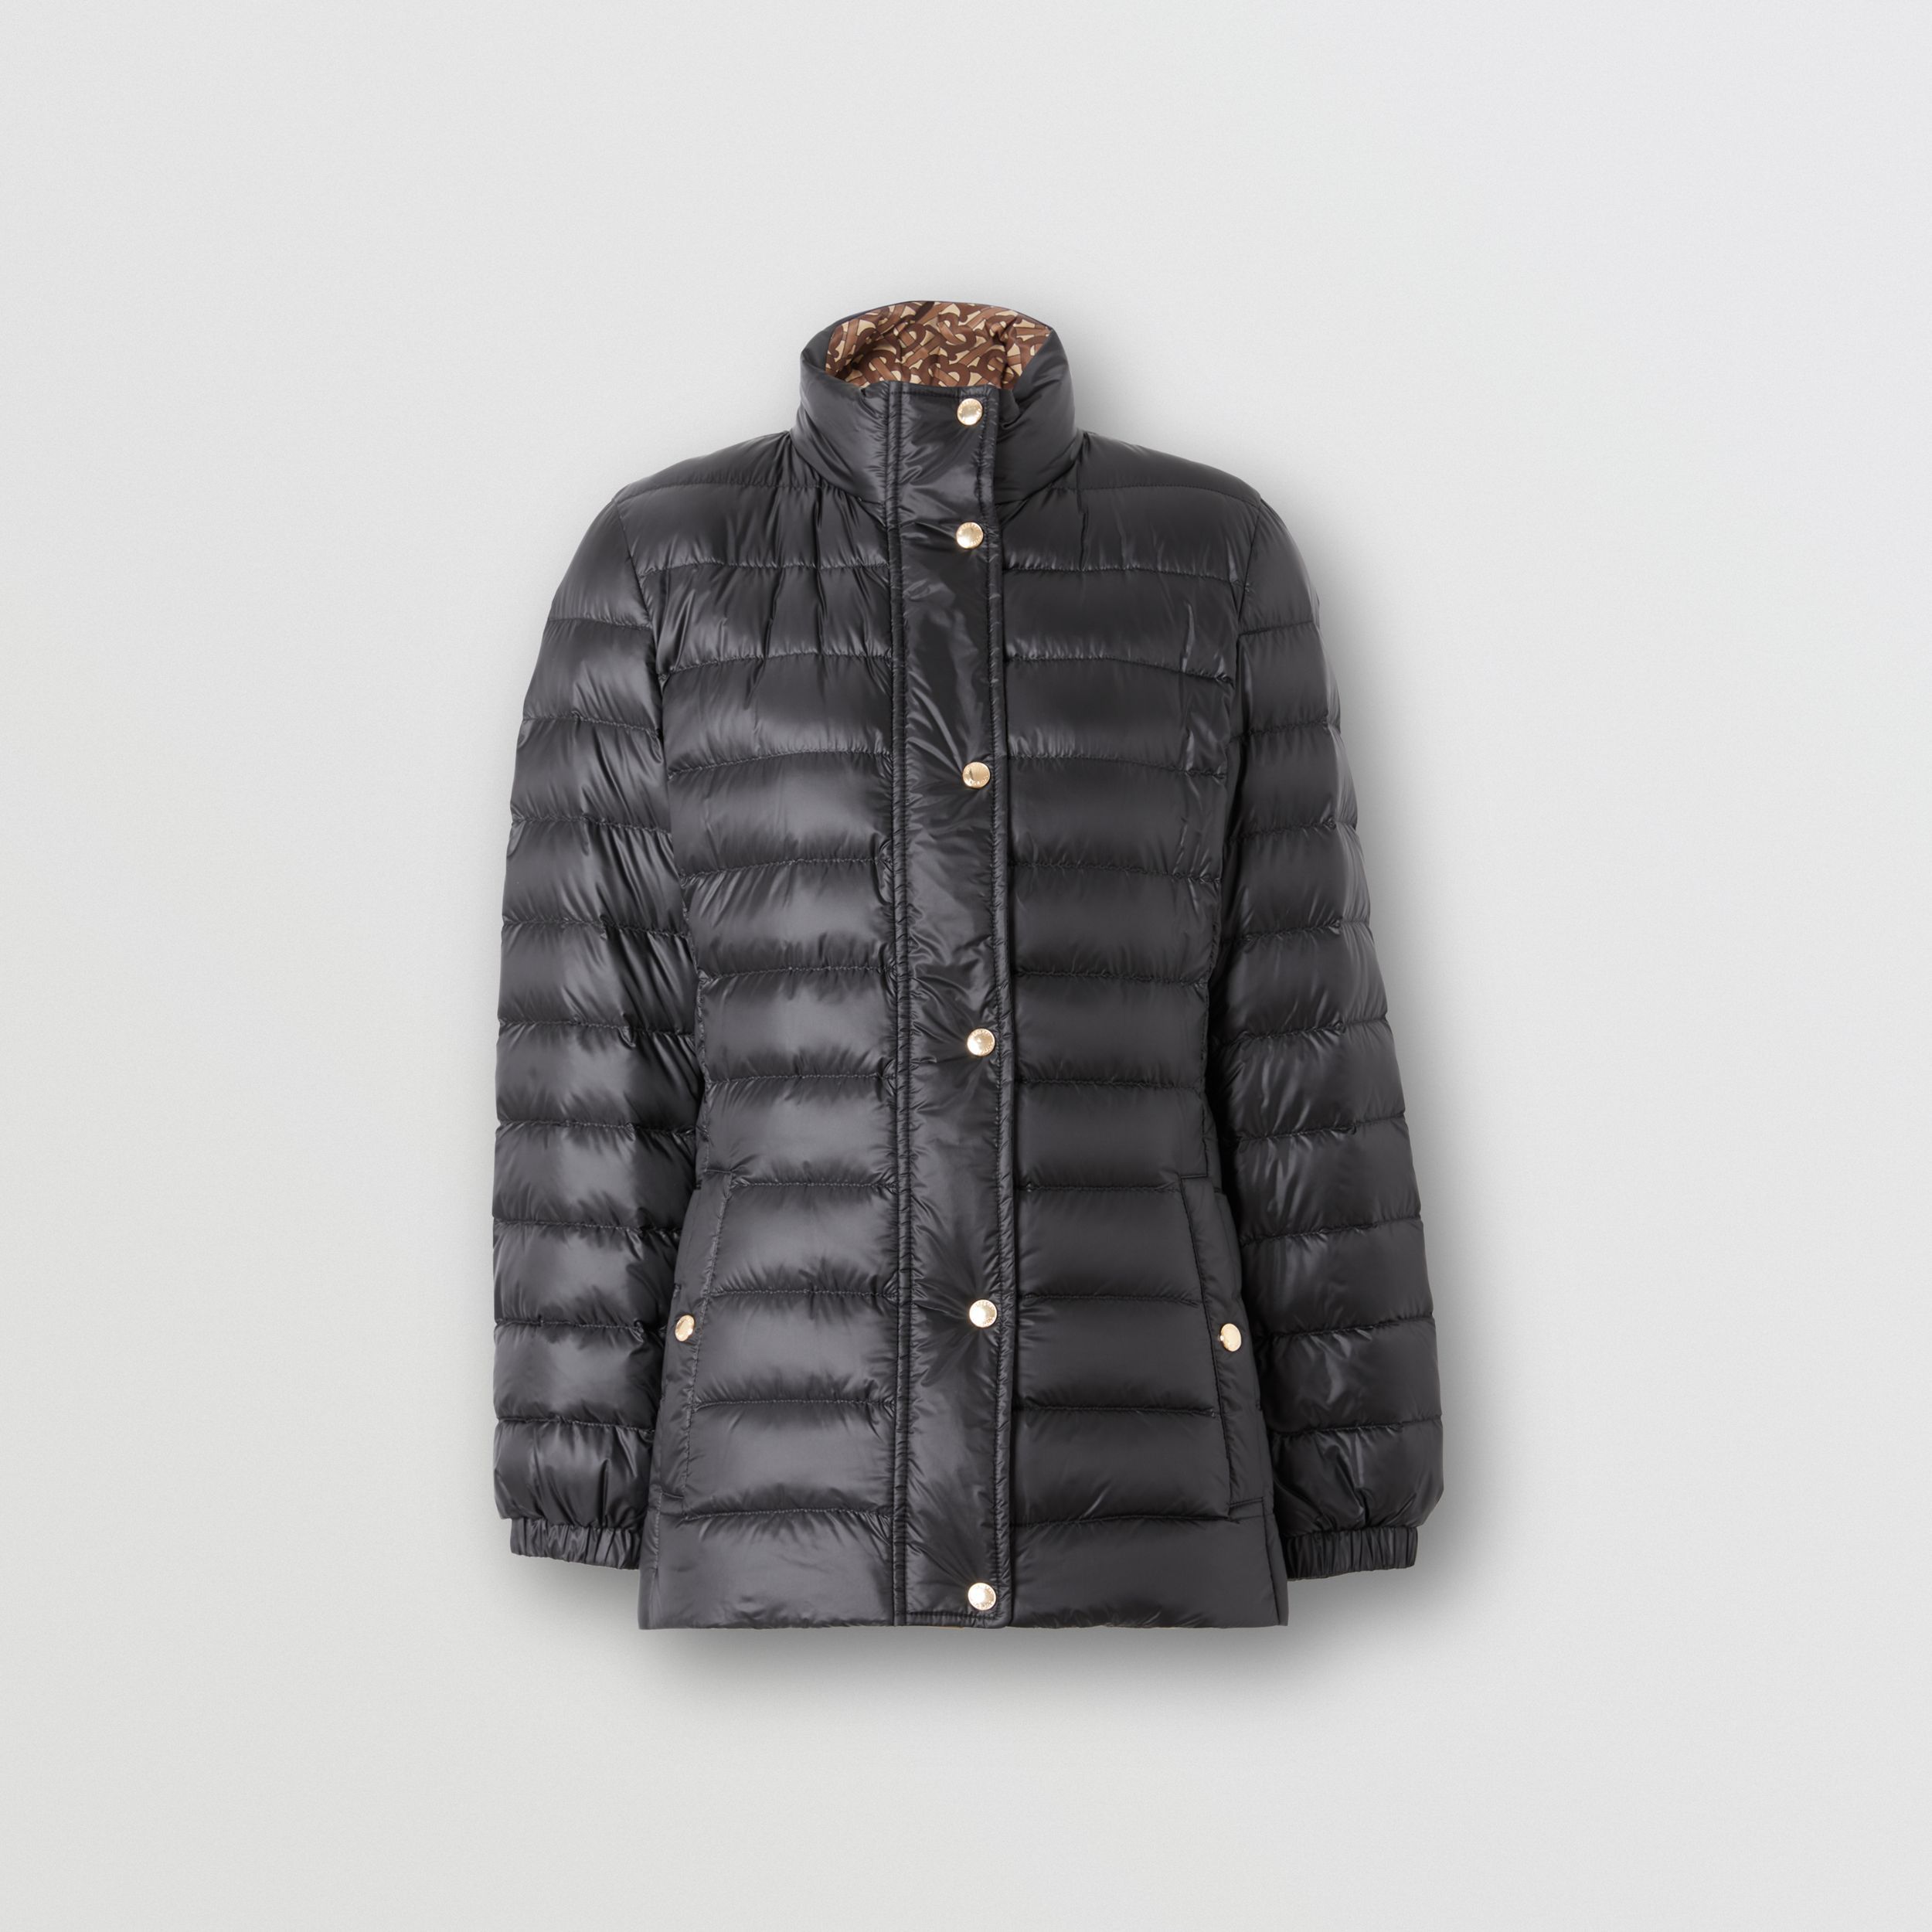 Monogram Print-lined Lightweight Puffer Jacket in Black - Women | Burberry United Kingdom - 4